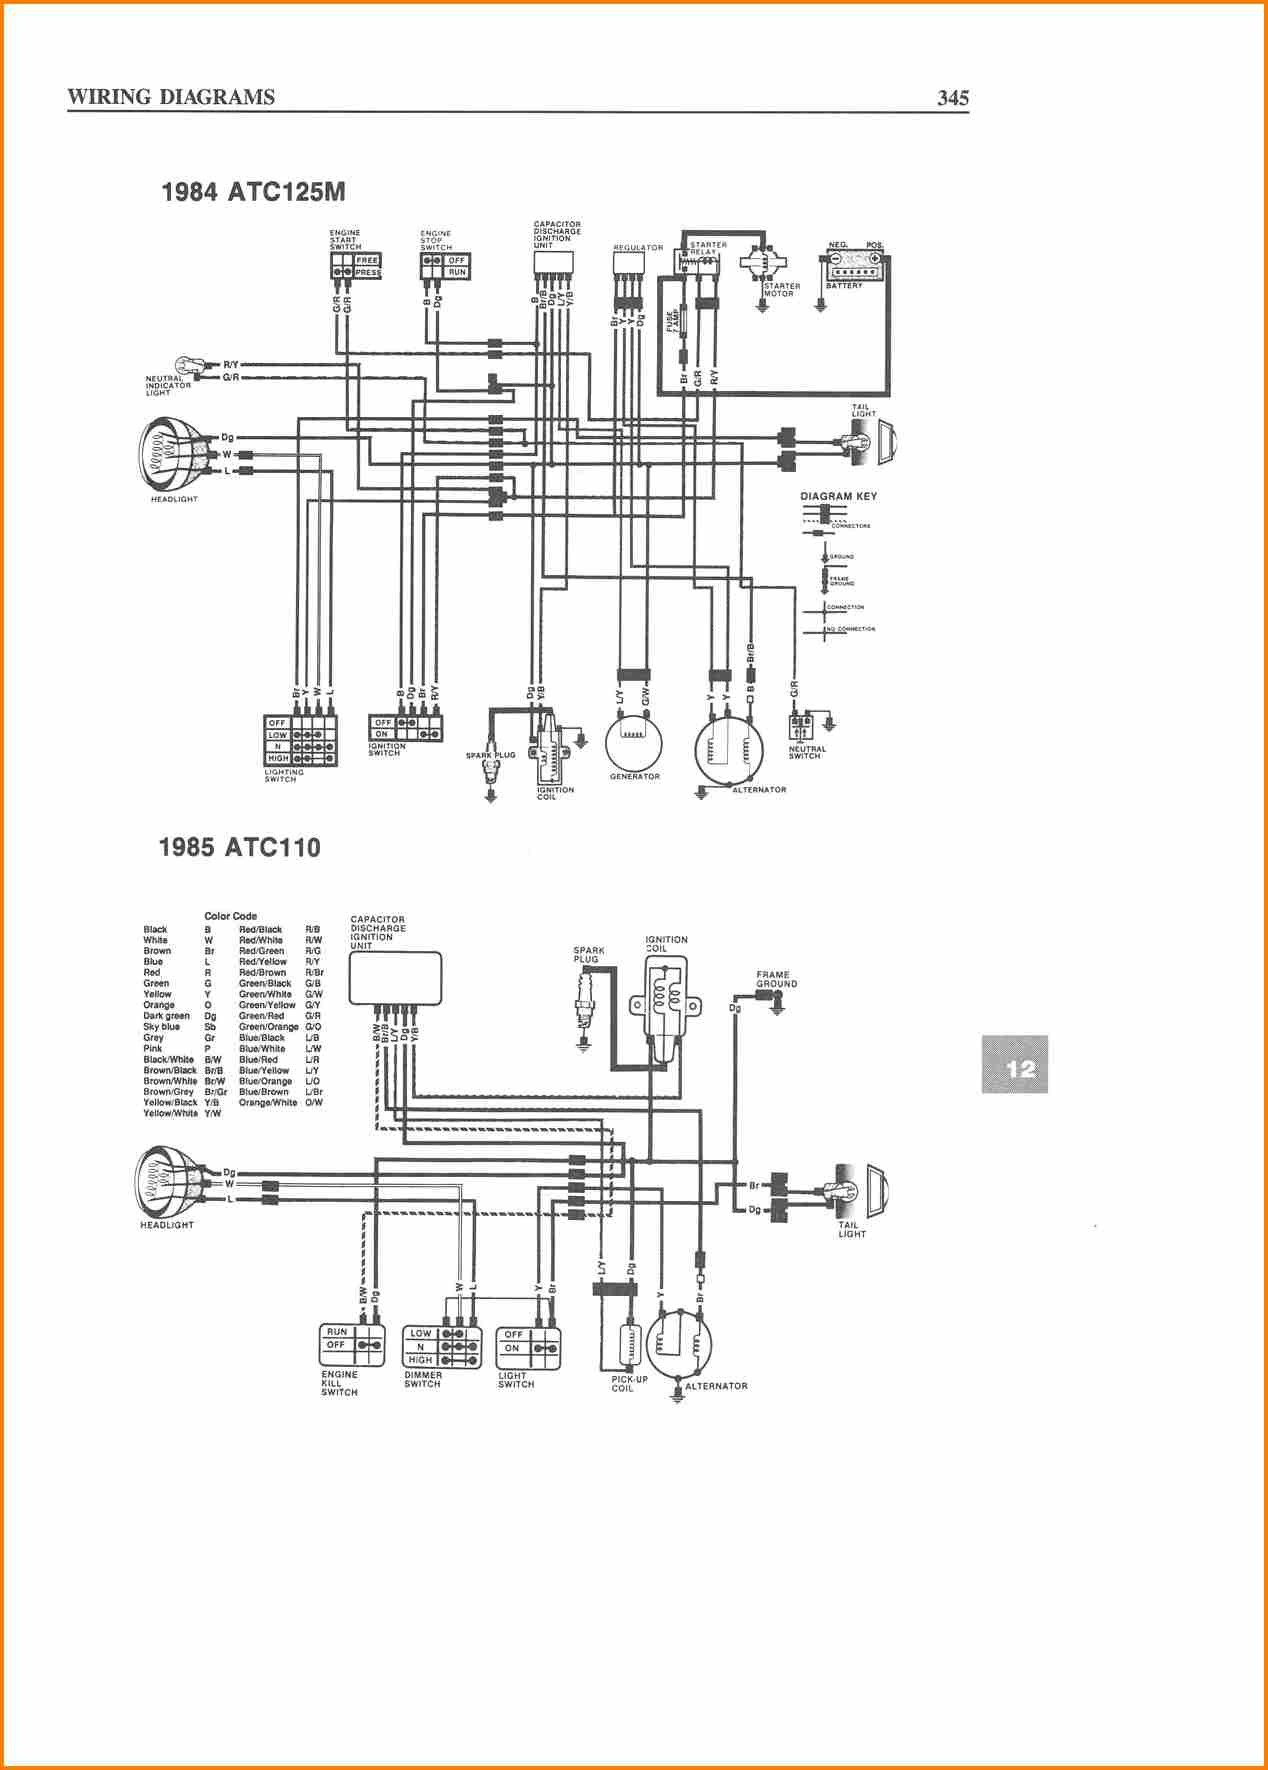 [DIAGRAM] Coolster 125cc Dirt Bike Engine Diagram